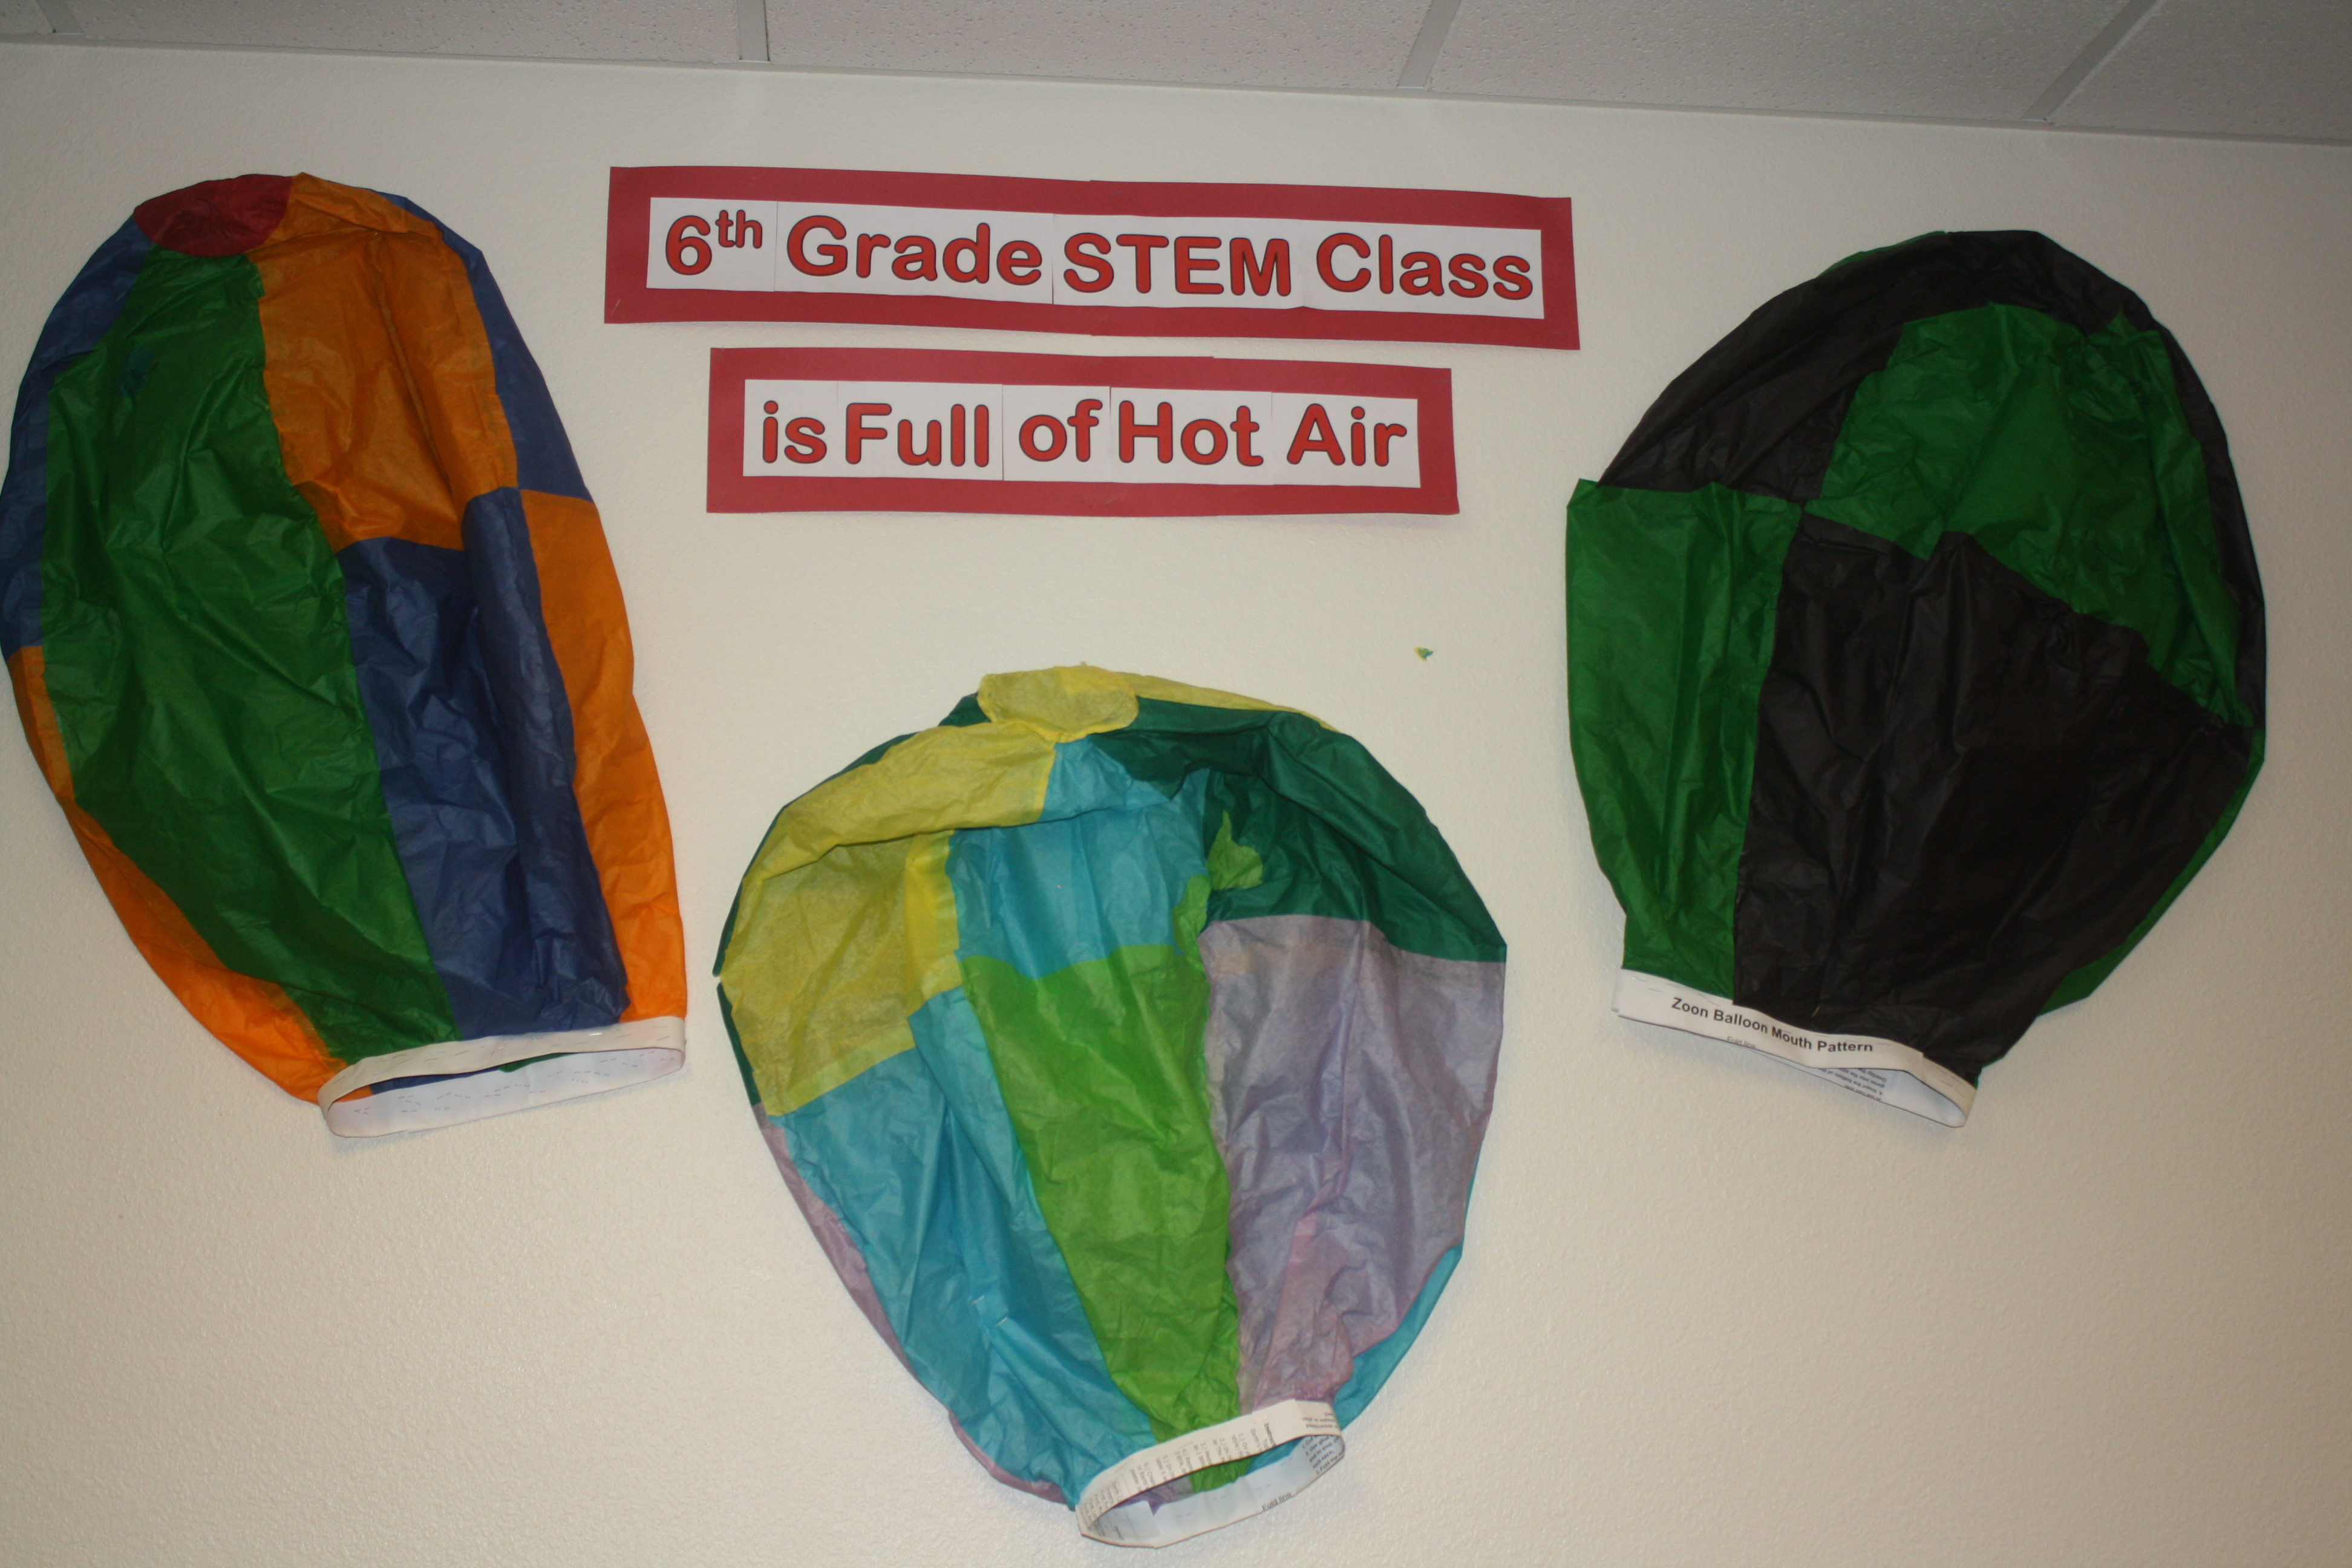 6th Grade STEM Class is Full of Hot Air - activity.